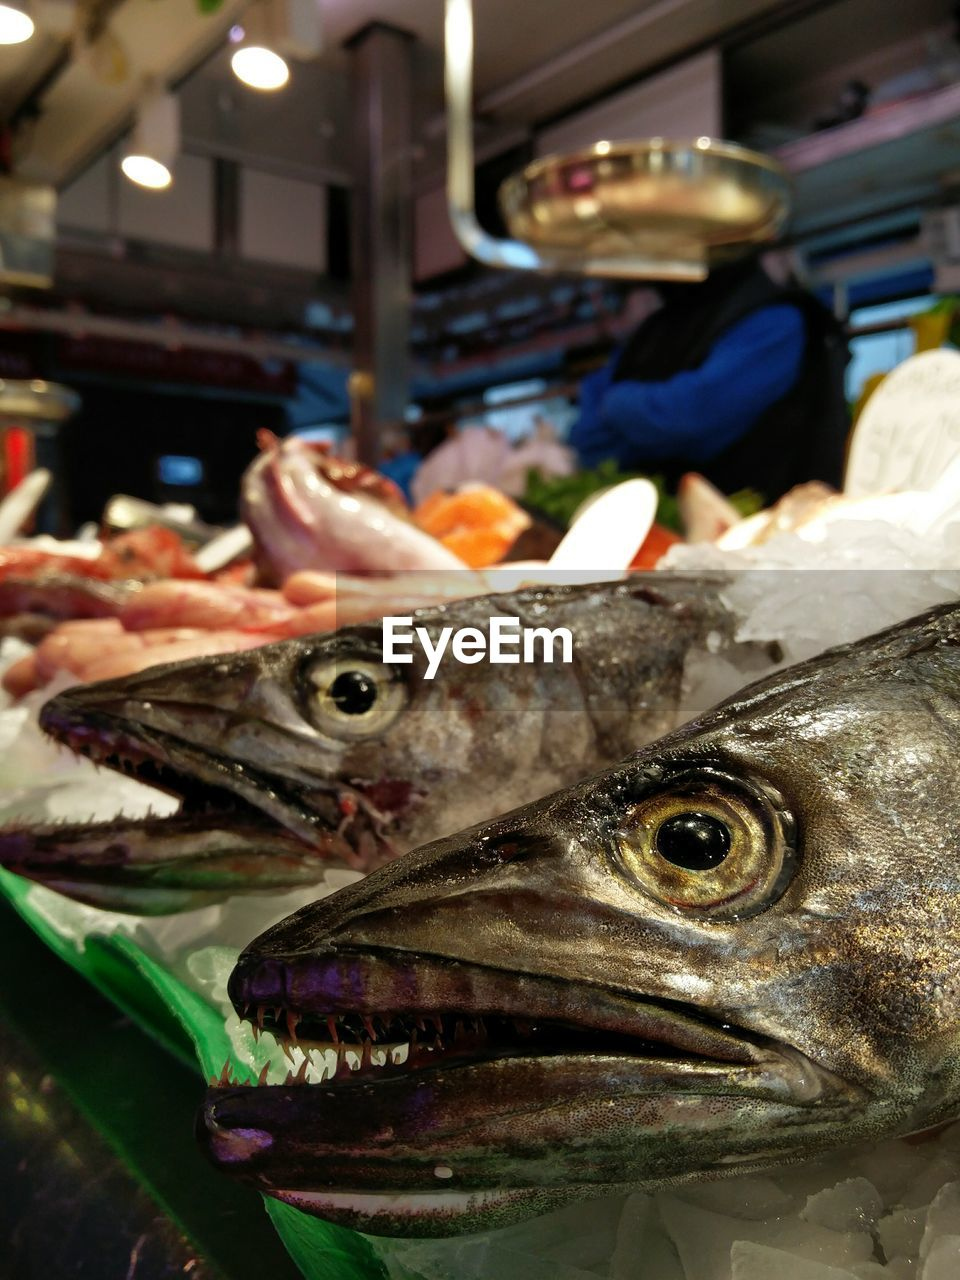 seafood, food, freshness, fish, food and drink, vertebrate, animal, raw food, close-up, healthy eating, for sale, wellbeing, indoors, market, retail, incidental people, business, fish market, focus on foreground, retail display, animal head